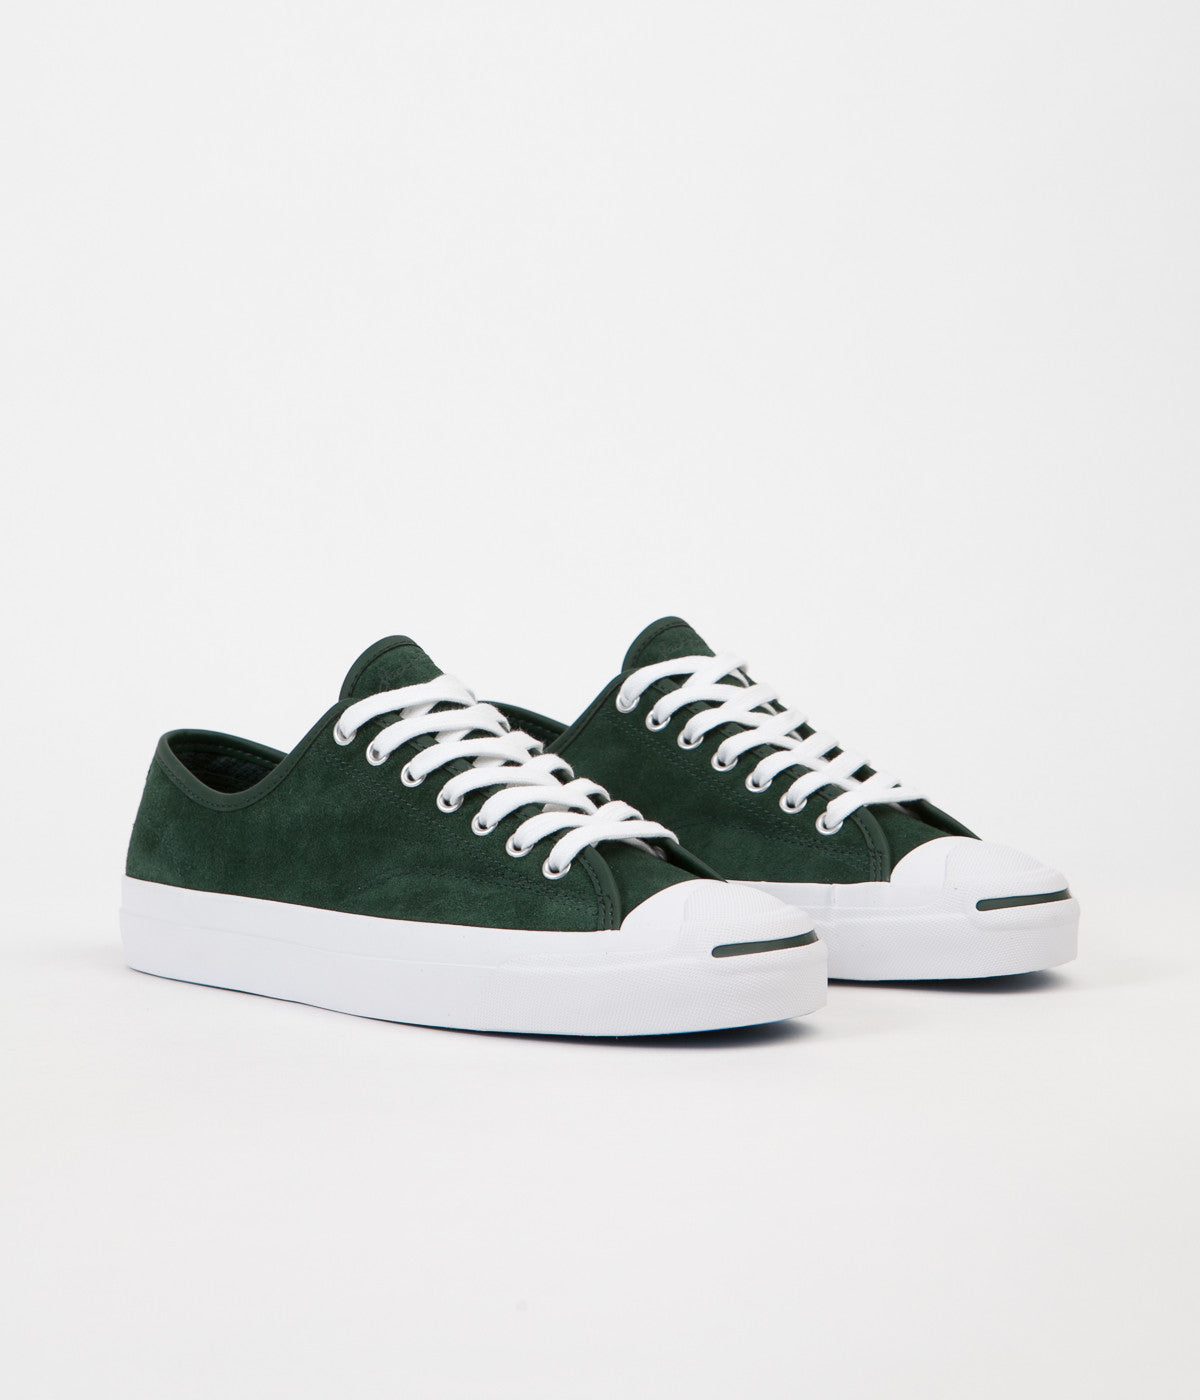 Converse x Polar Jack Purcell JP Pro Ox Shoes Deep Emerald